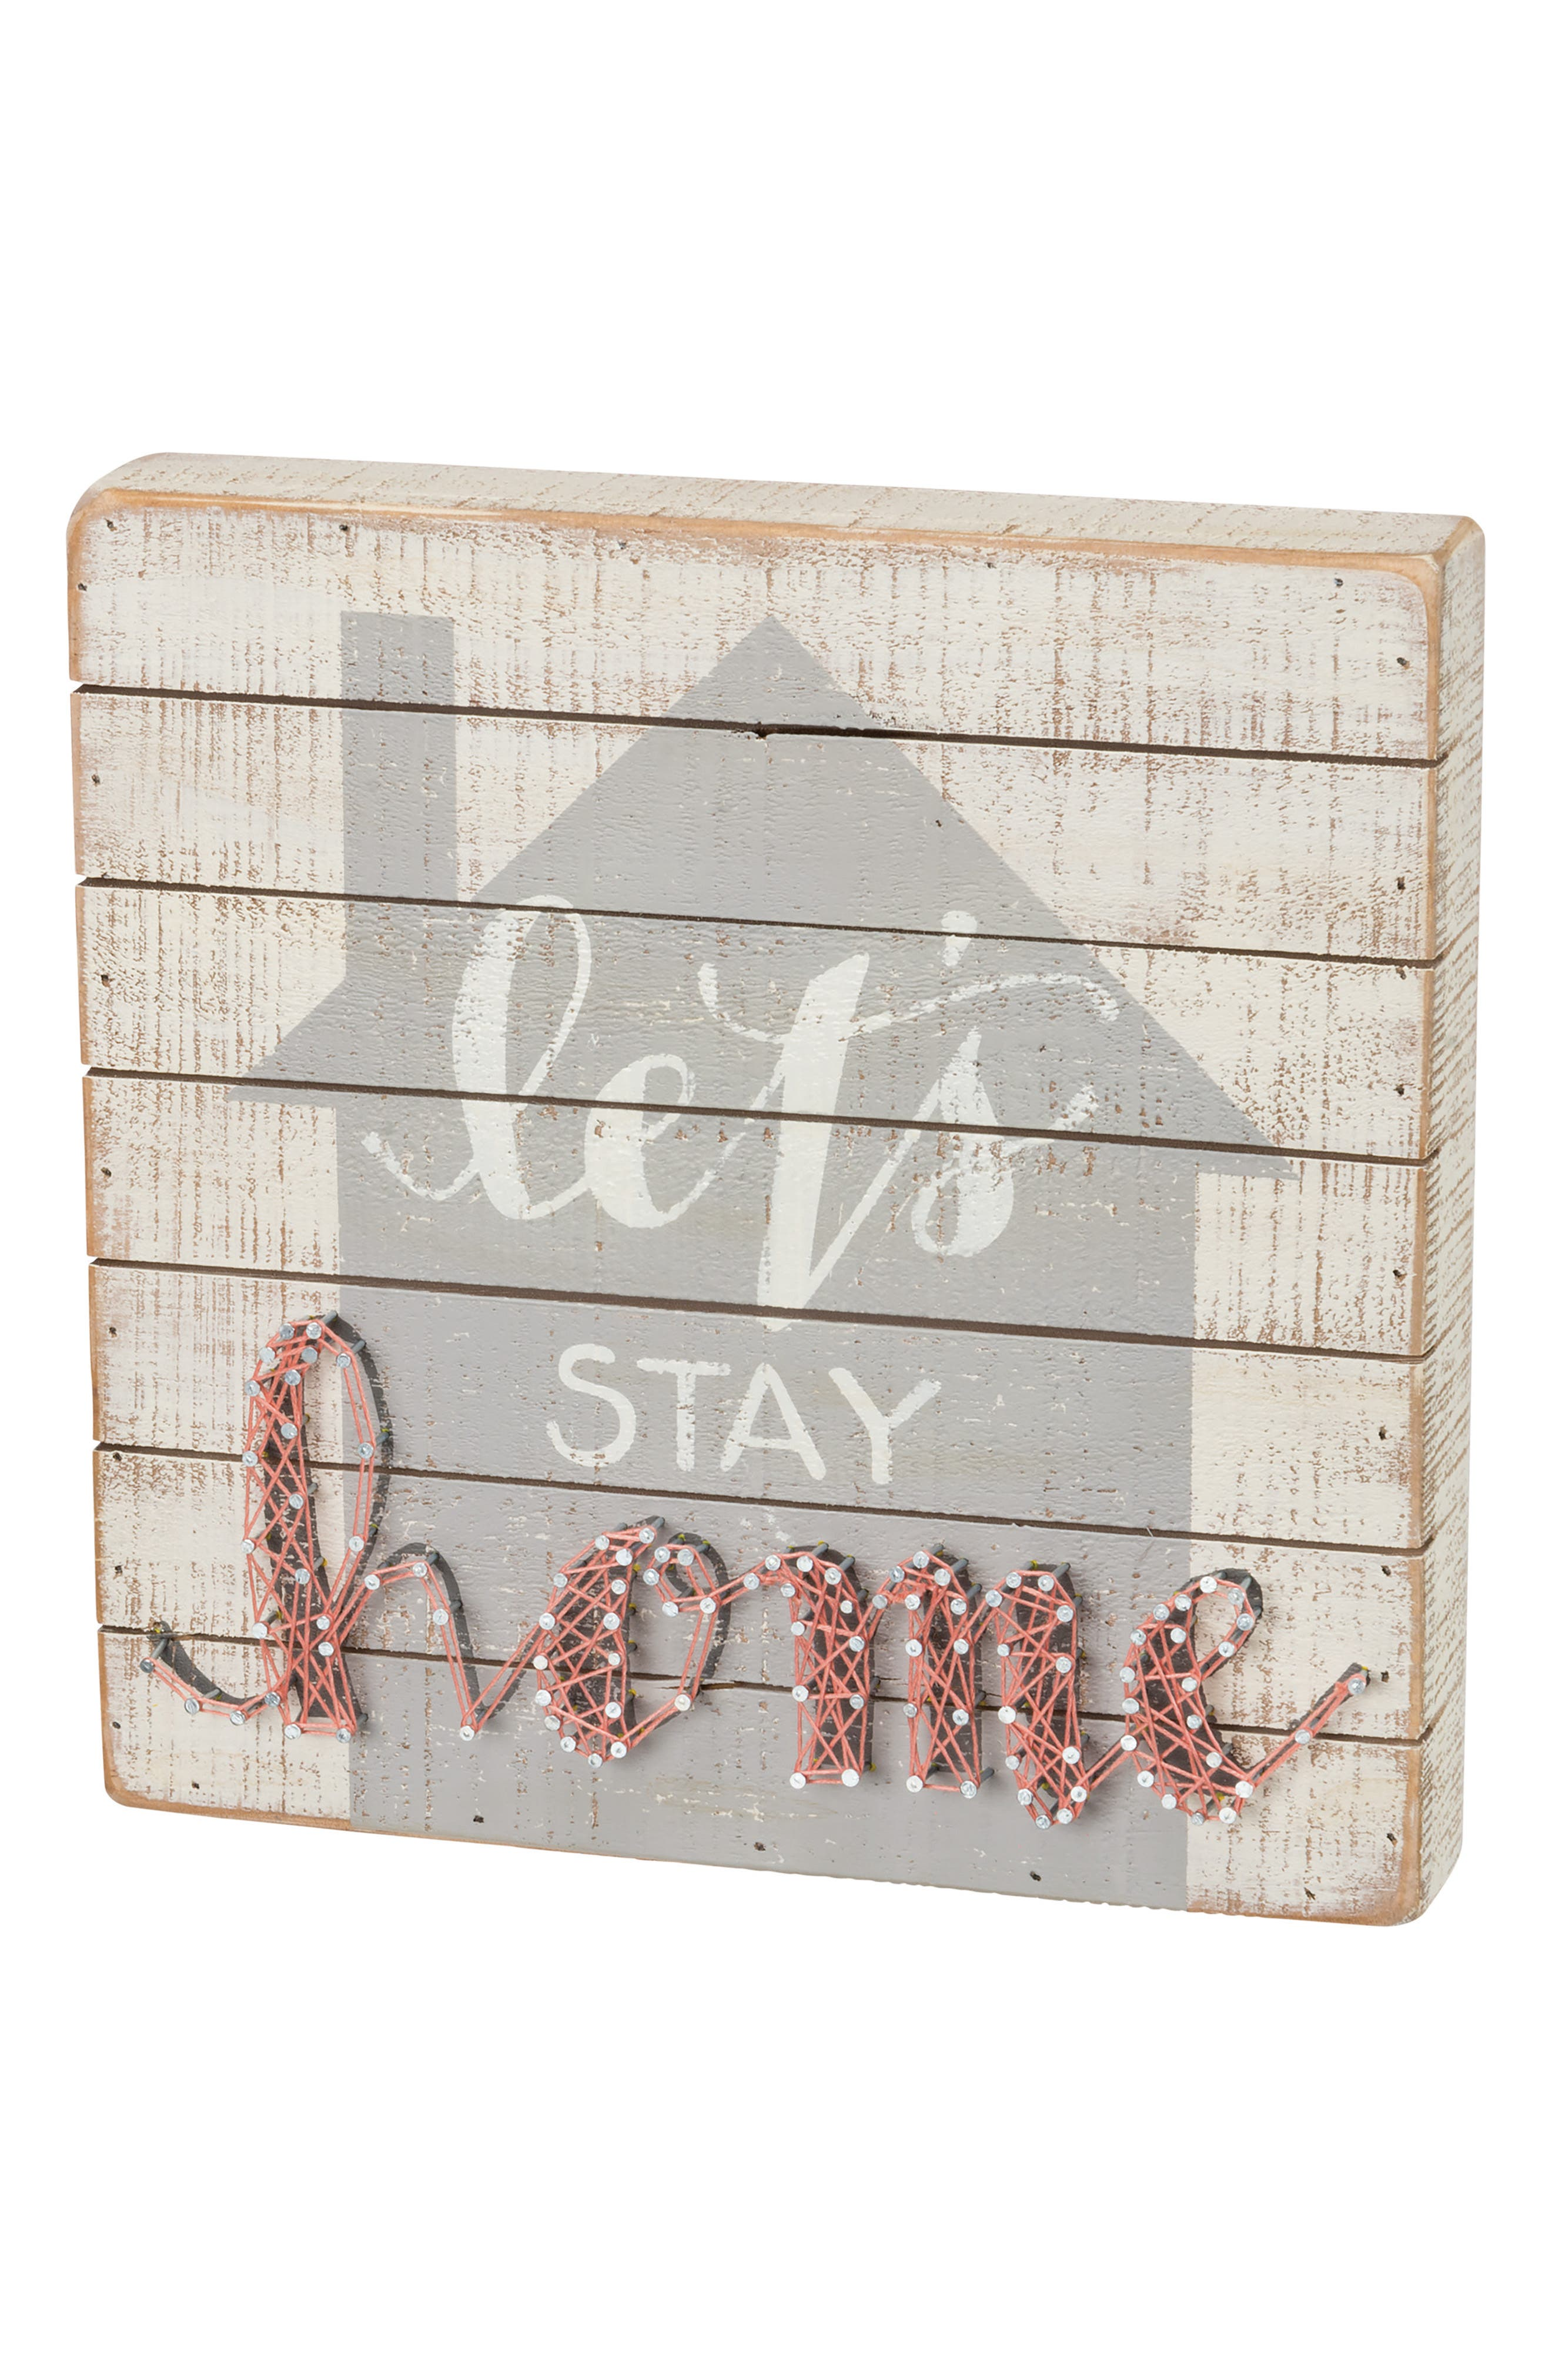 Primitives by Kathy Let's Stay Home String Art Box Sign